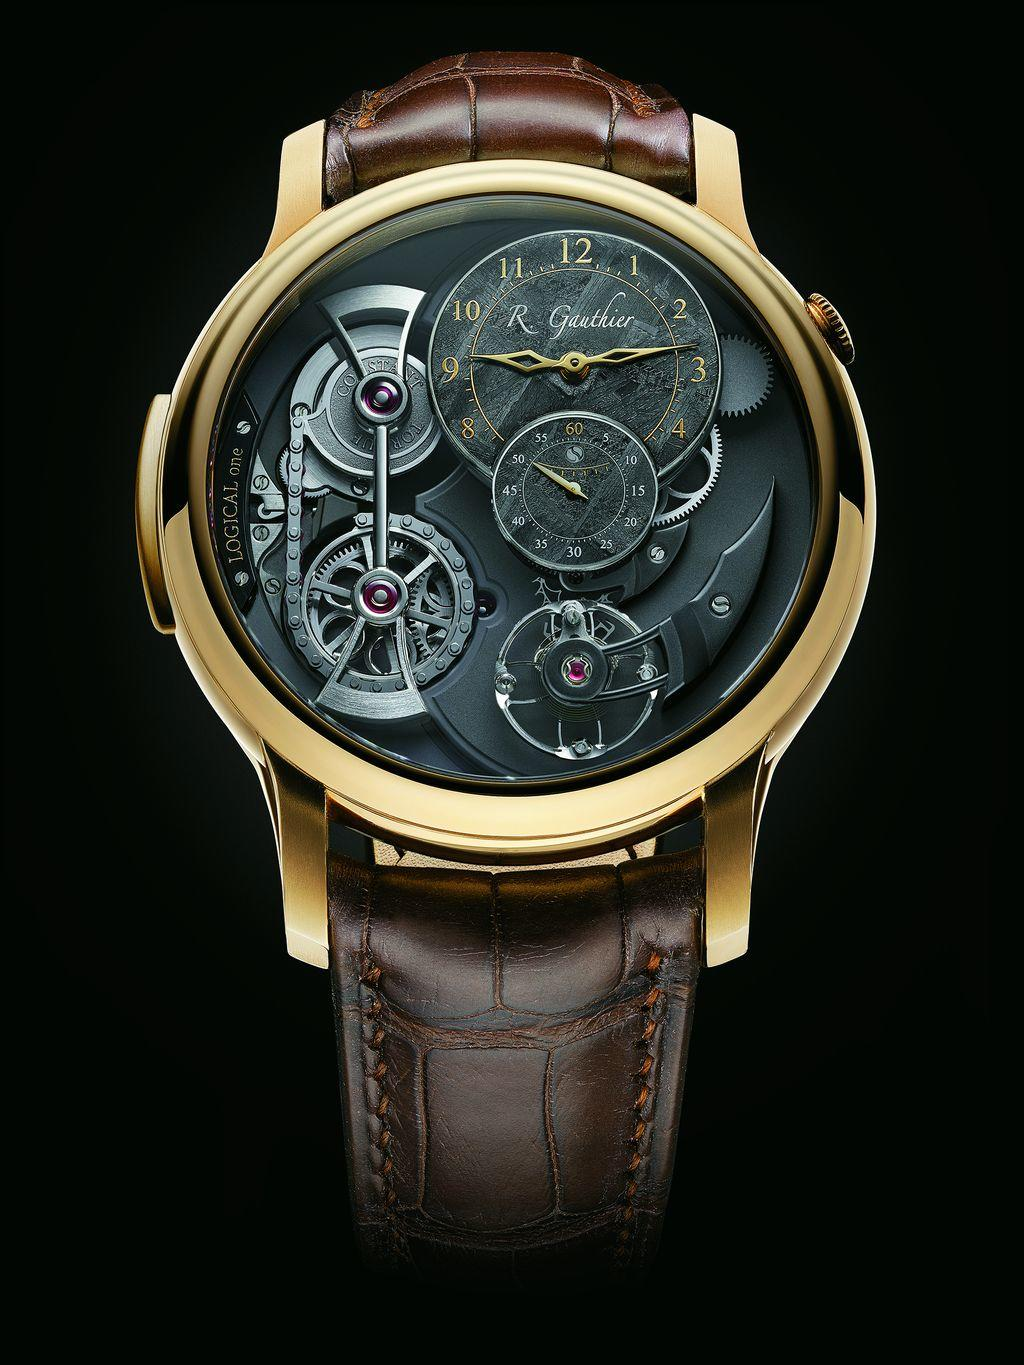 Romain Gauthier Logical One Bronze